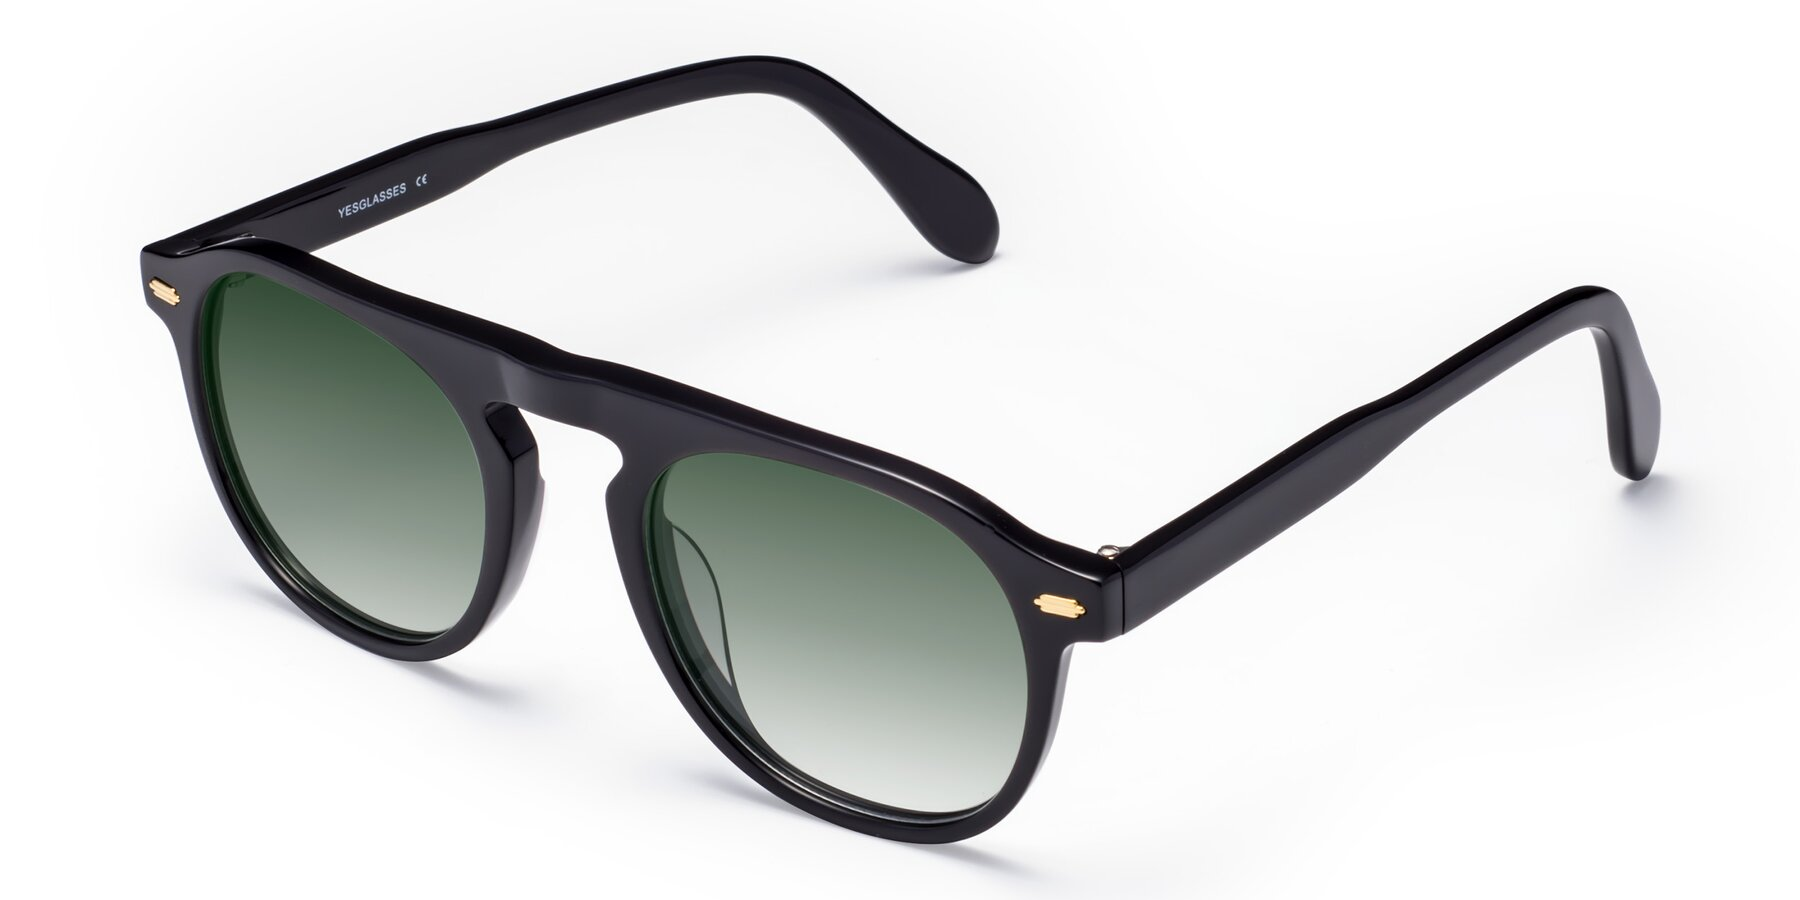 Angle of Mufasa in Black with Green Gradient Lenses